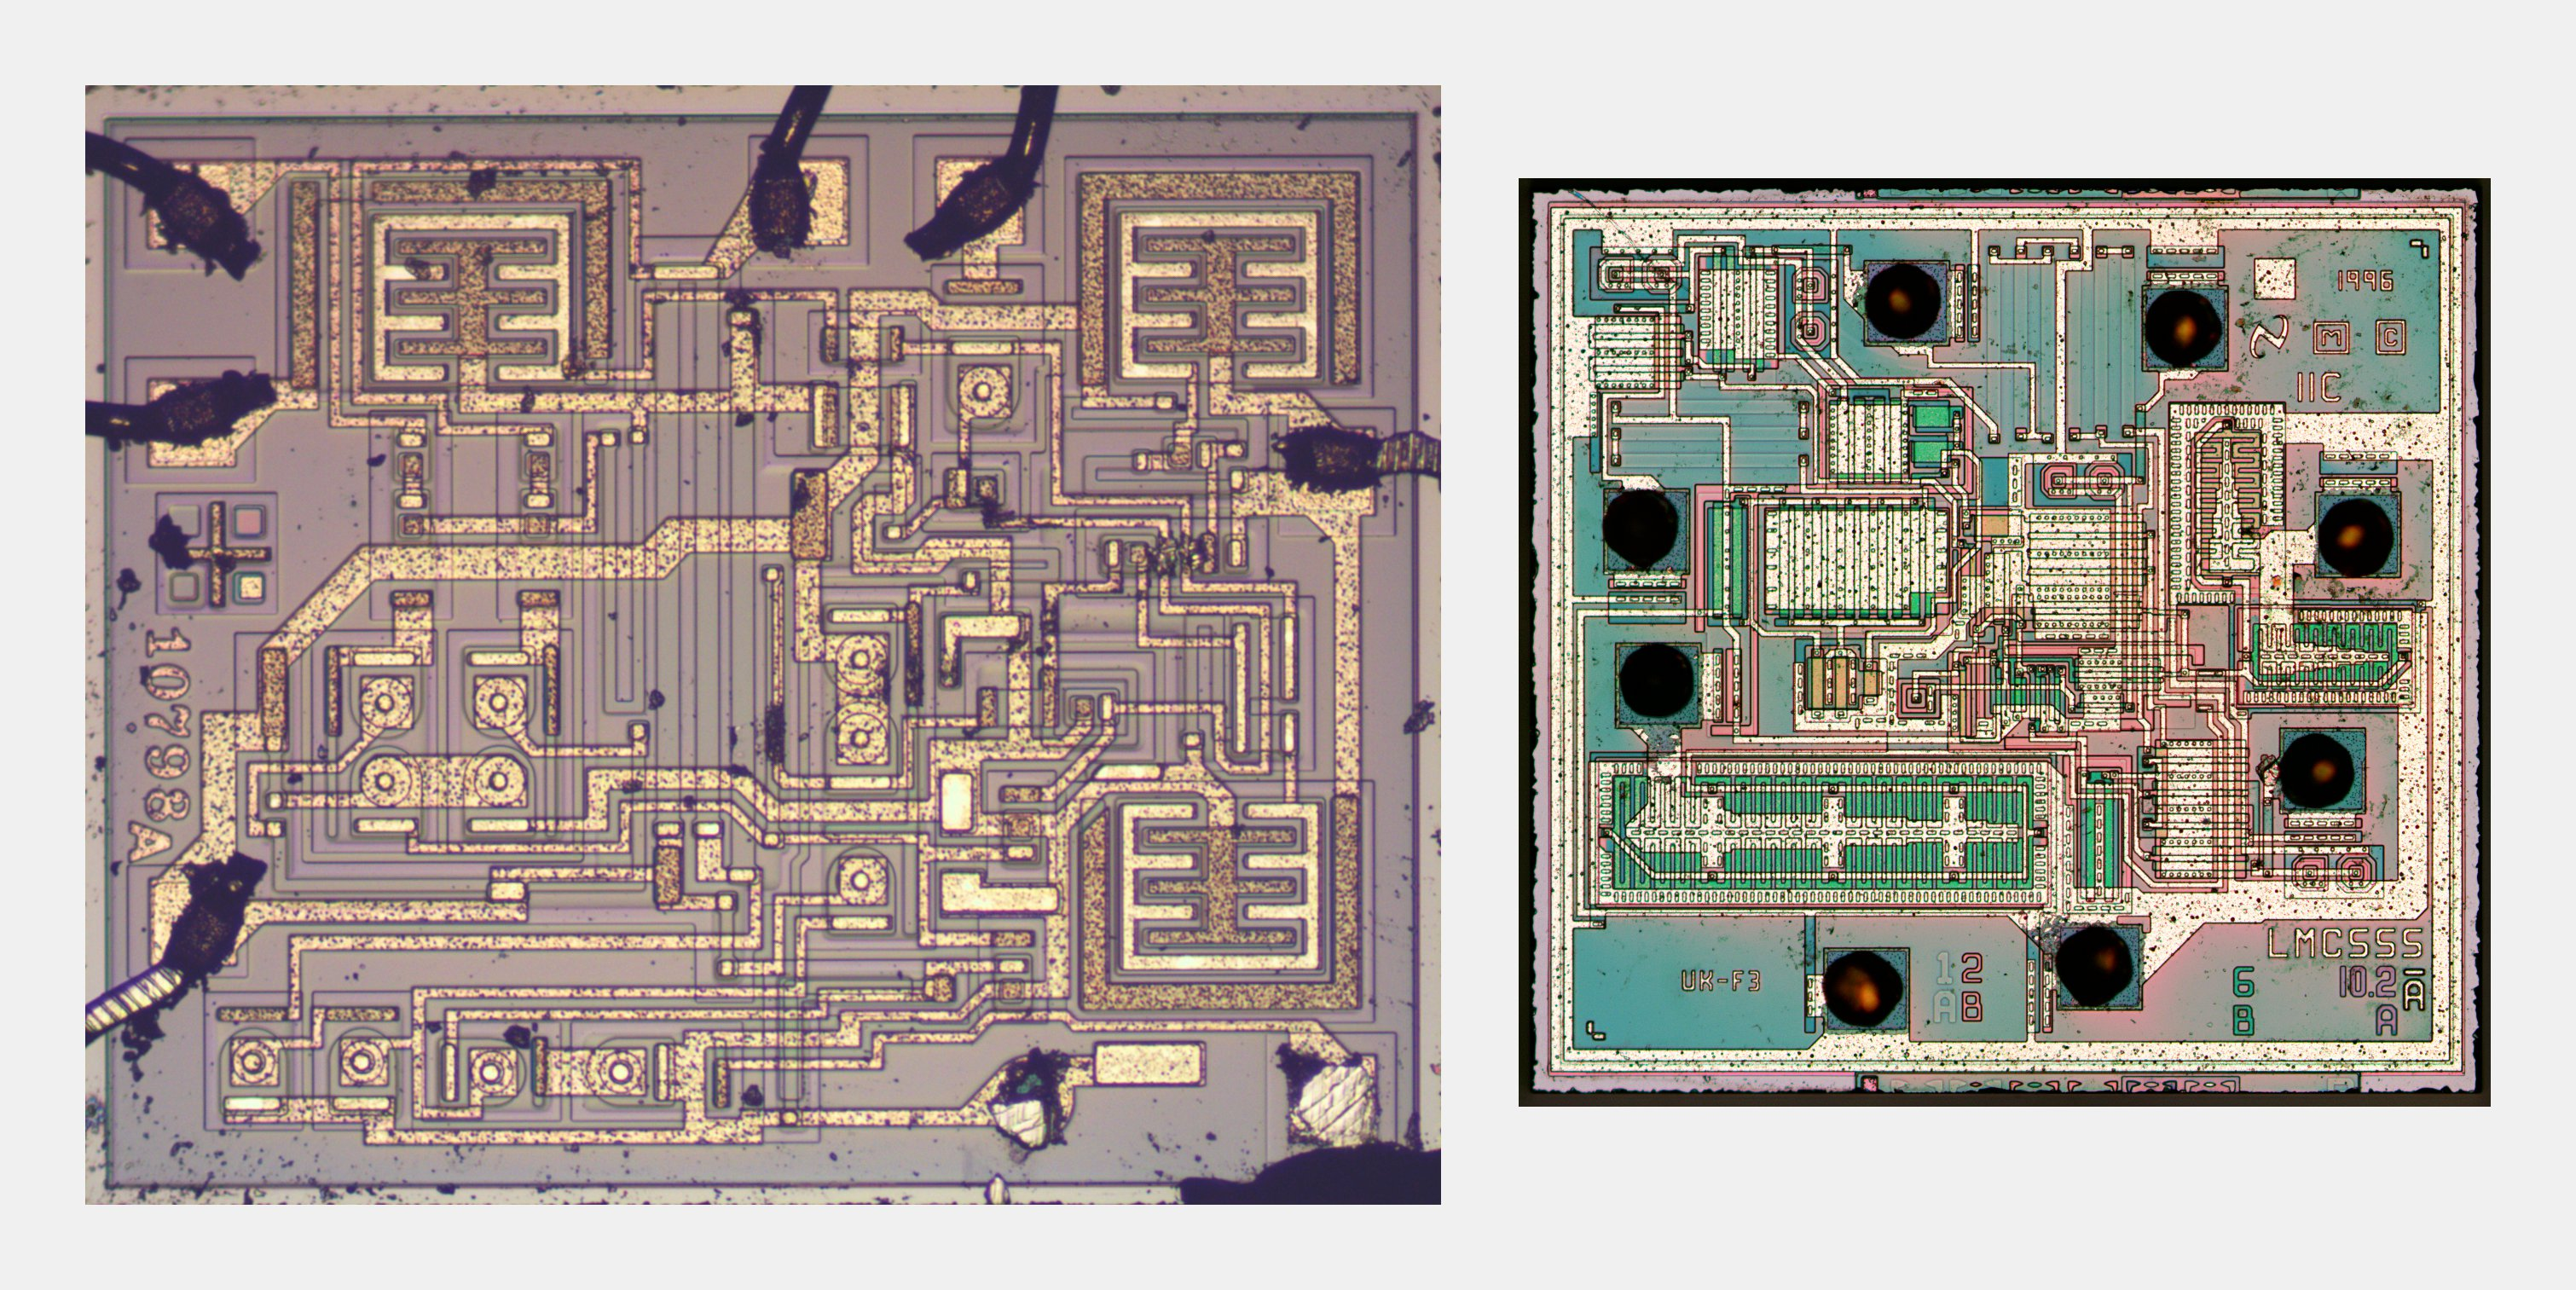 Reverse Engineering The Popular 555 Timer Chip Cmos Version Circuit Description Of Present Can Be Understood Die Photos Left And Right